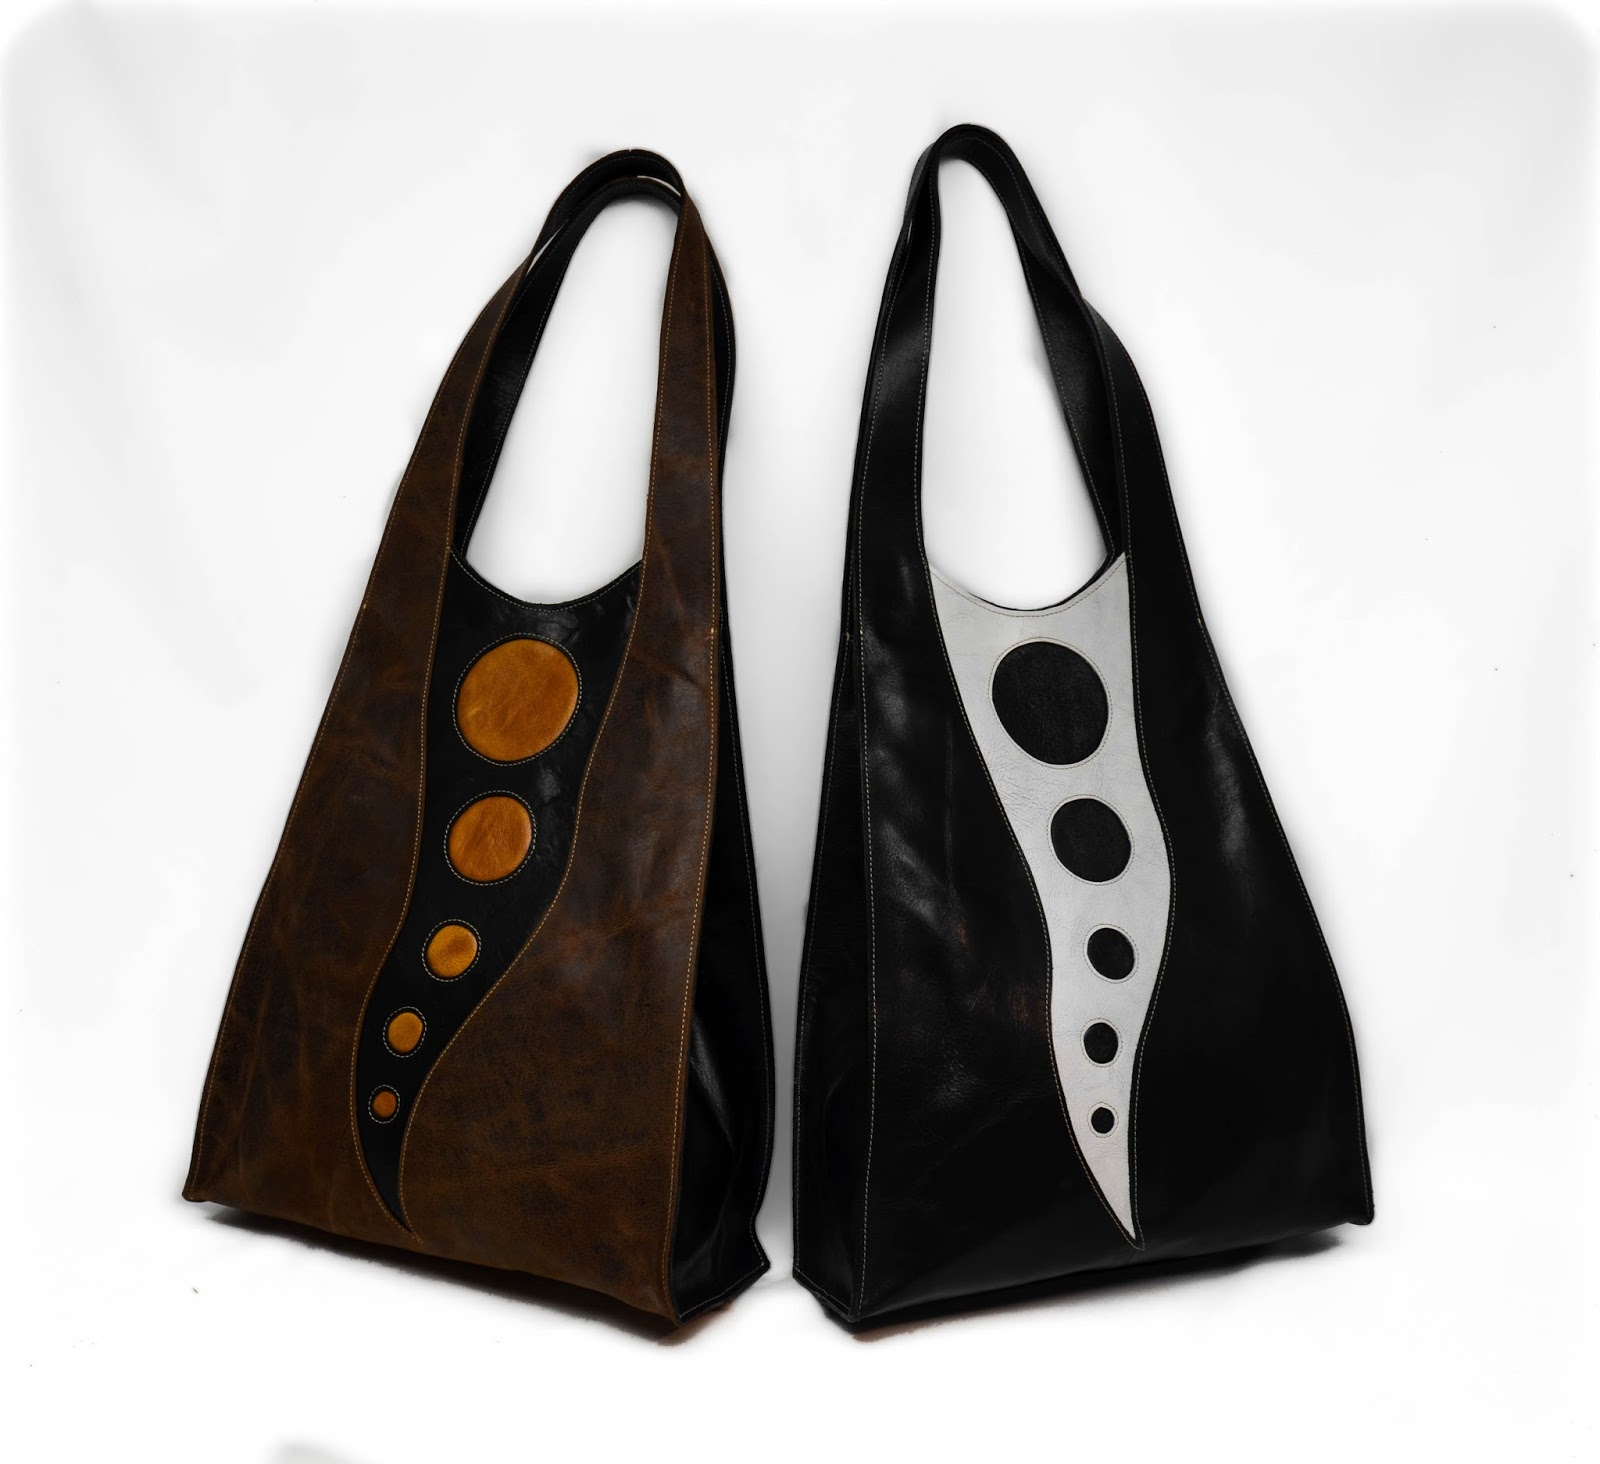 Two Leather Chemical Wedding Handbag Totes In Brown Mustard And Black White